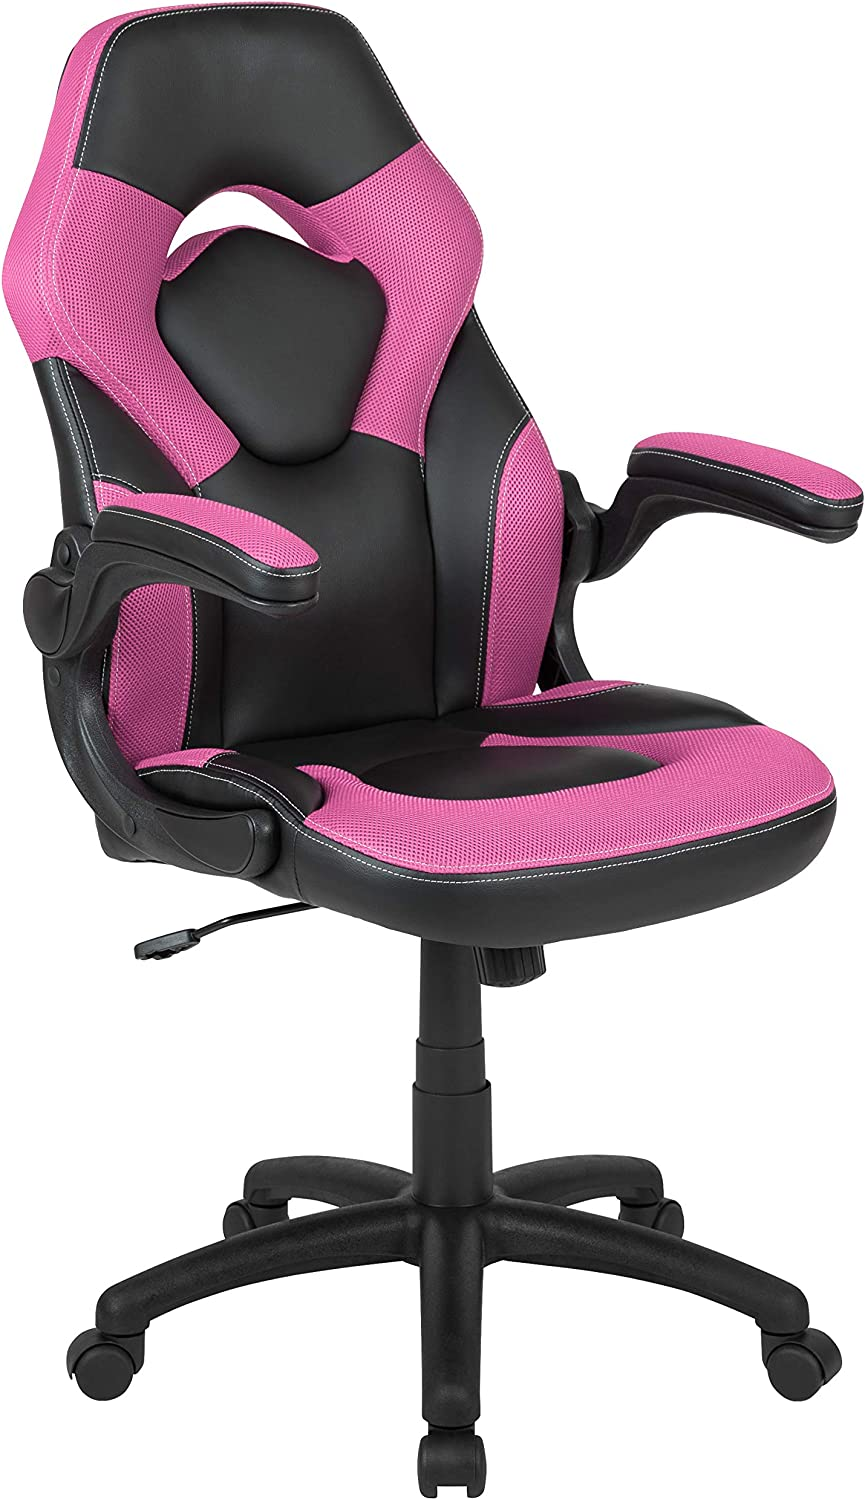 Flash Furniture X10 Gaming Chair Racing Office Ergonomic Computer PC Adjustable Swivel Chair with Flip-up Arms, Pink/Black LeatherSoft